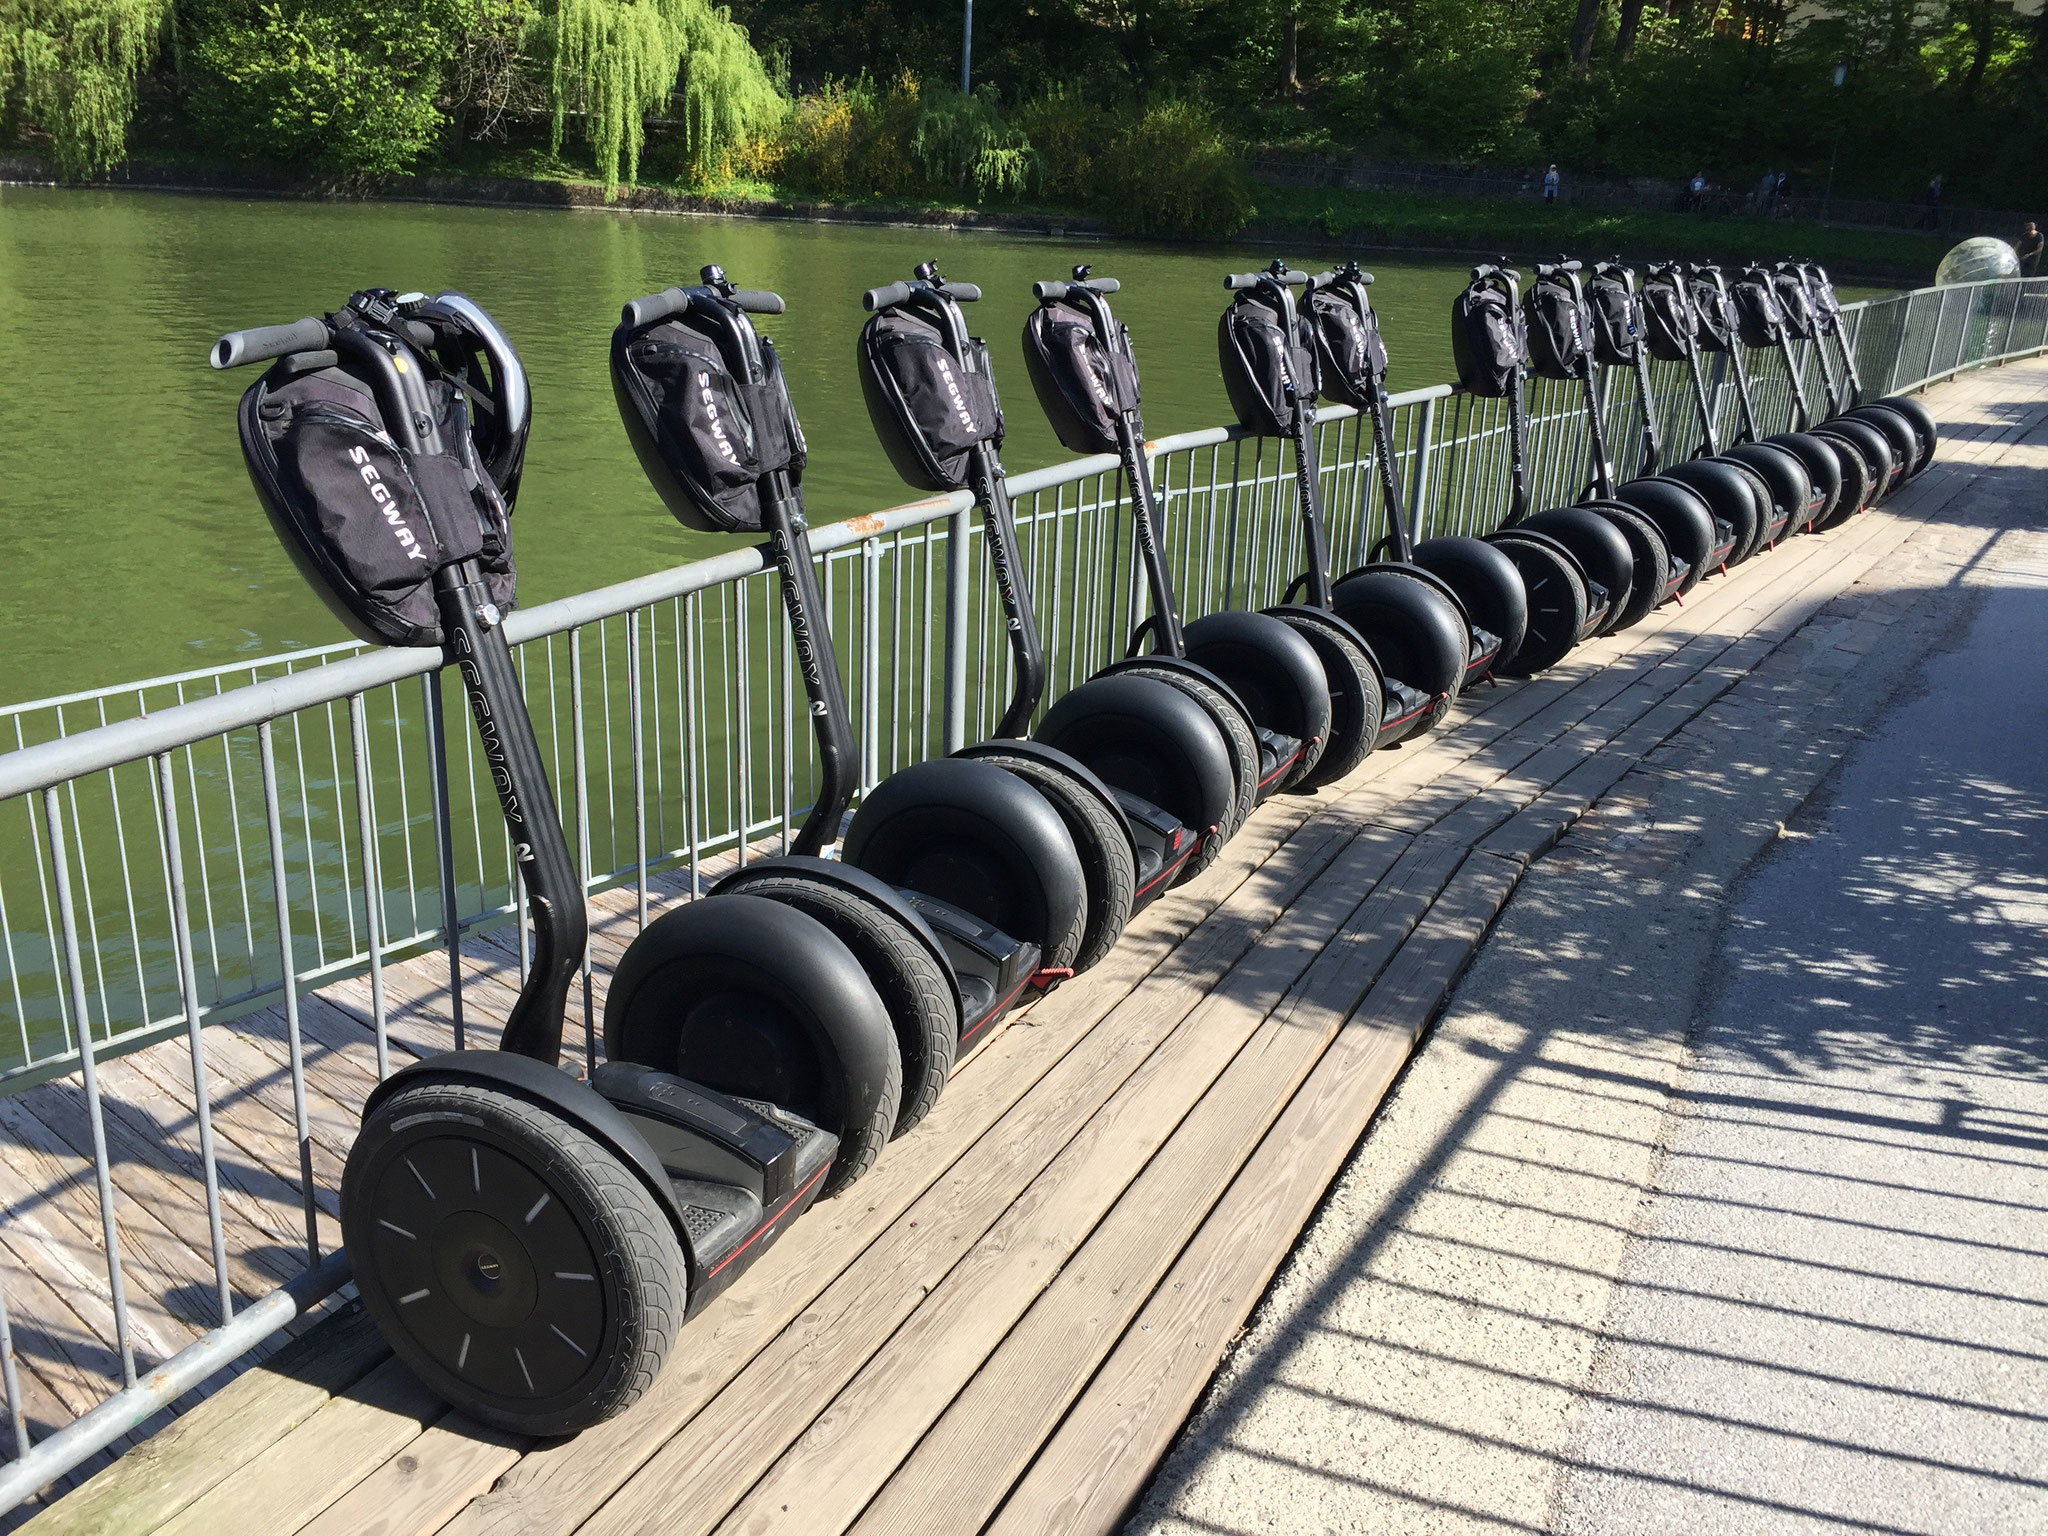 Segway-Event am See